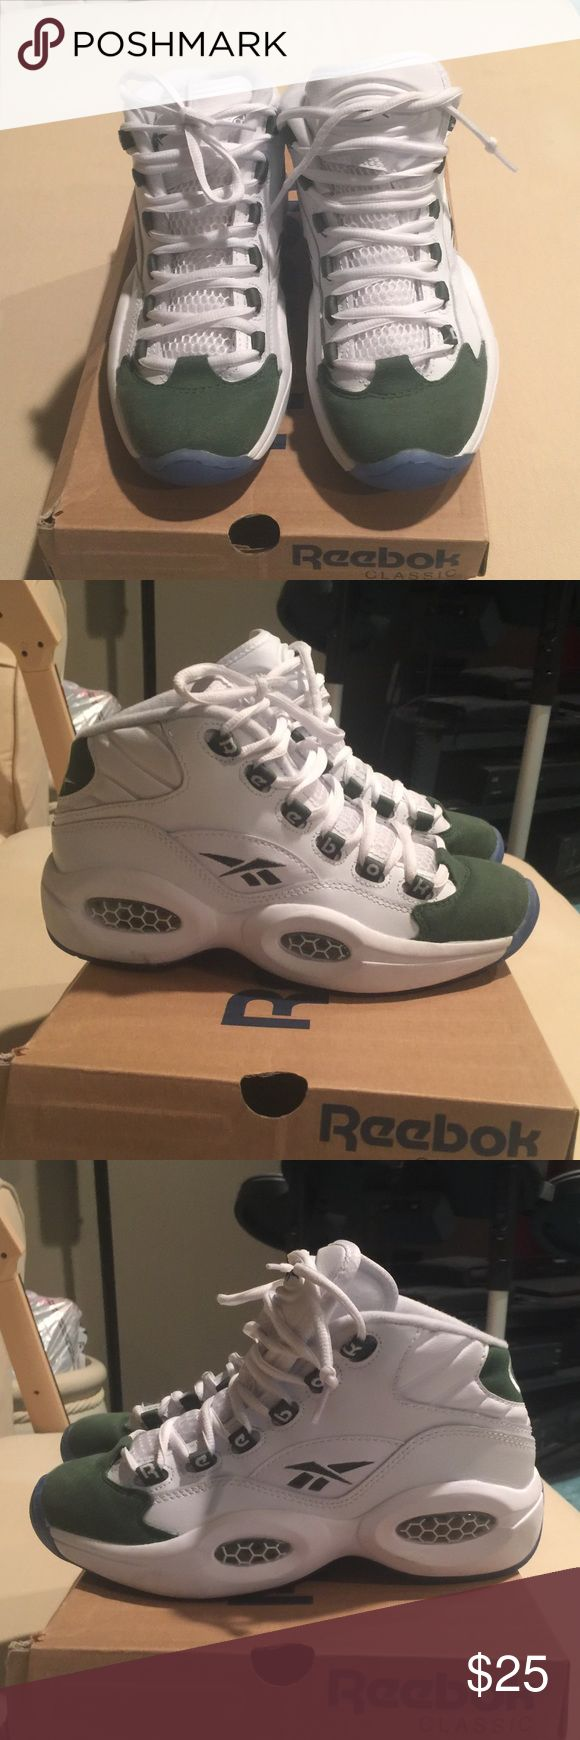 Reebok Alan Iverson Size 4youth Reebok Alan Iverson (Question Mid) Size 4youth. Very good condition Reebok Shoes Sneakers